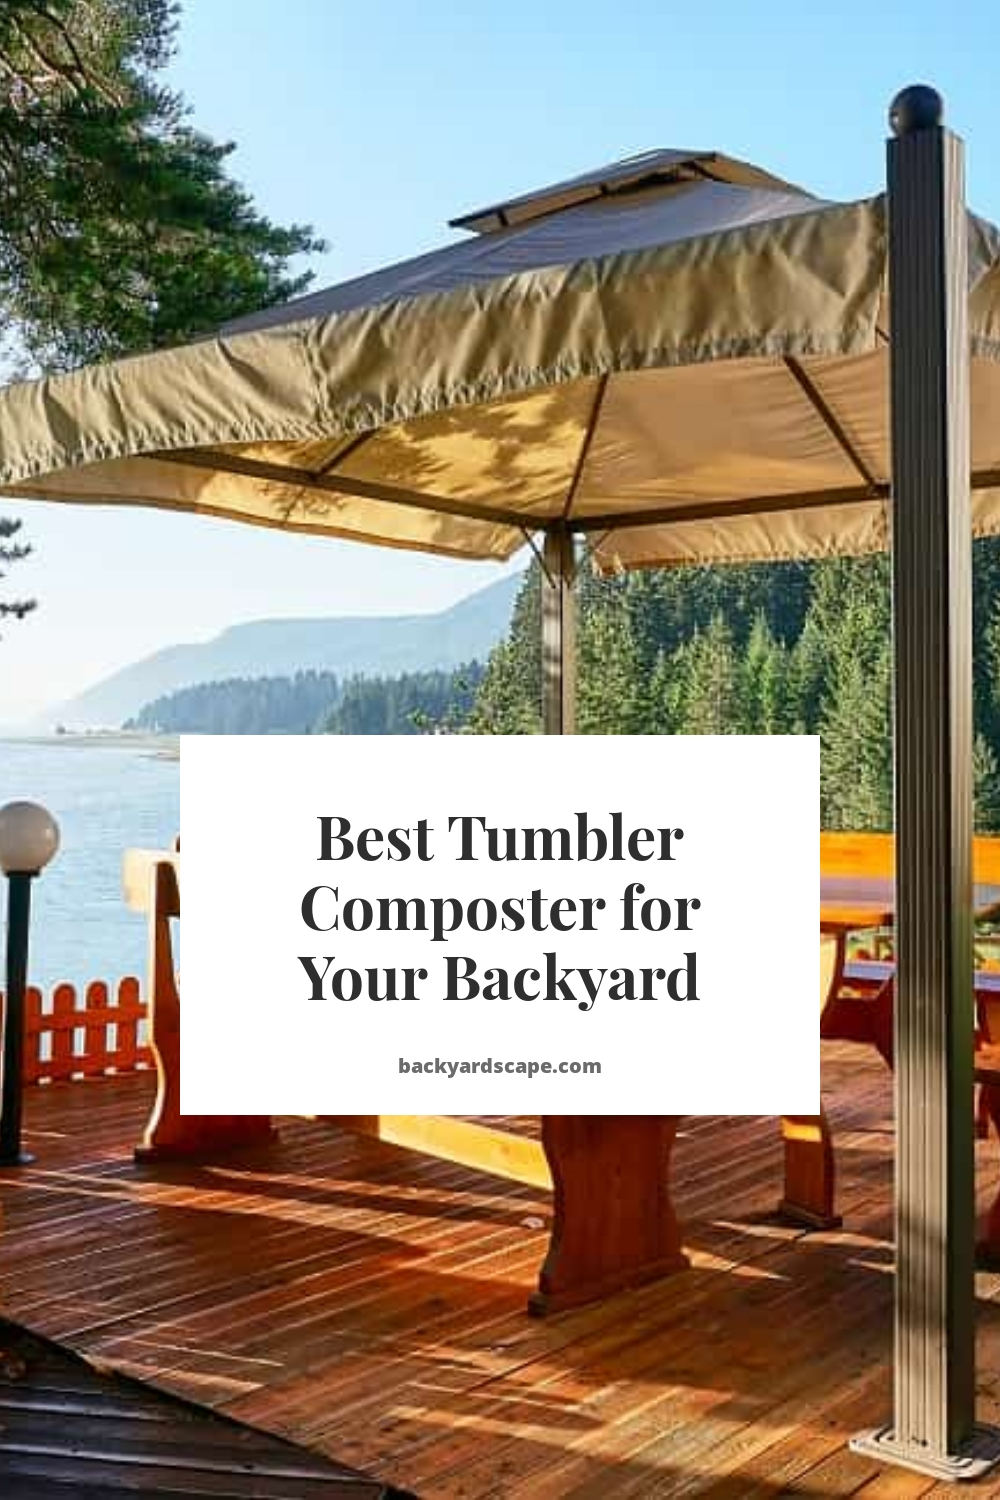 Best Tumbler Composter for Your Backyard